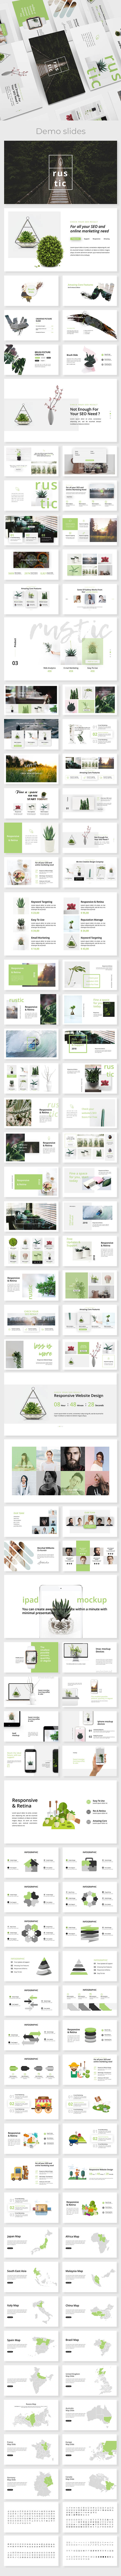 Rustic Minimal Powerpoint Template - Creative PowerPoint Templates